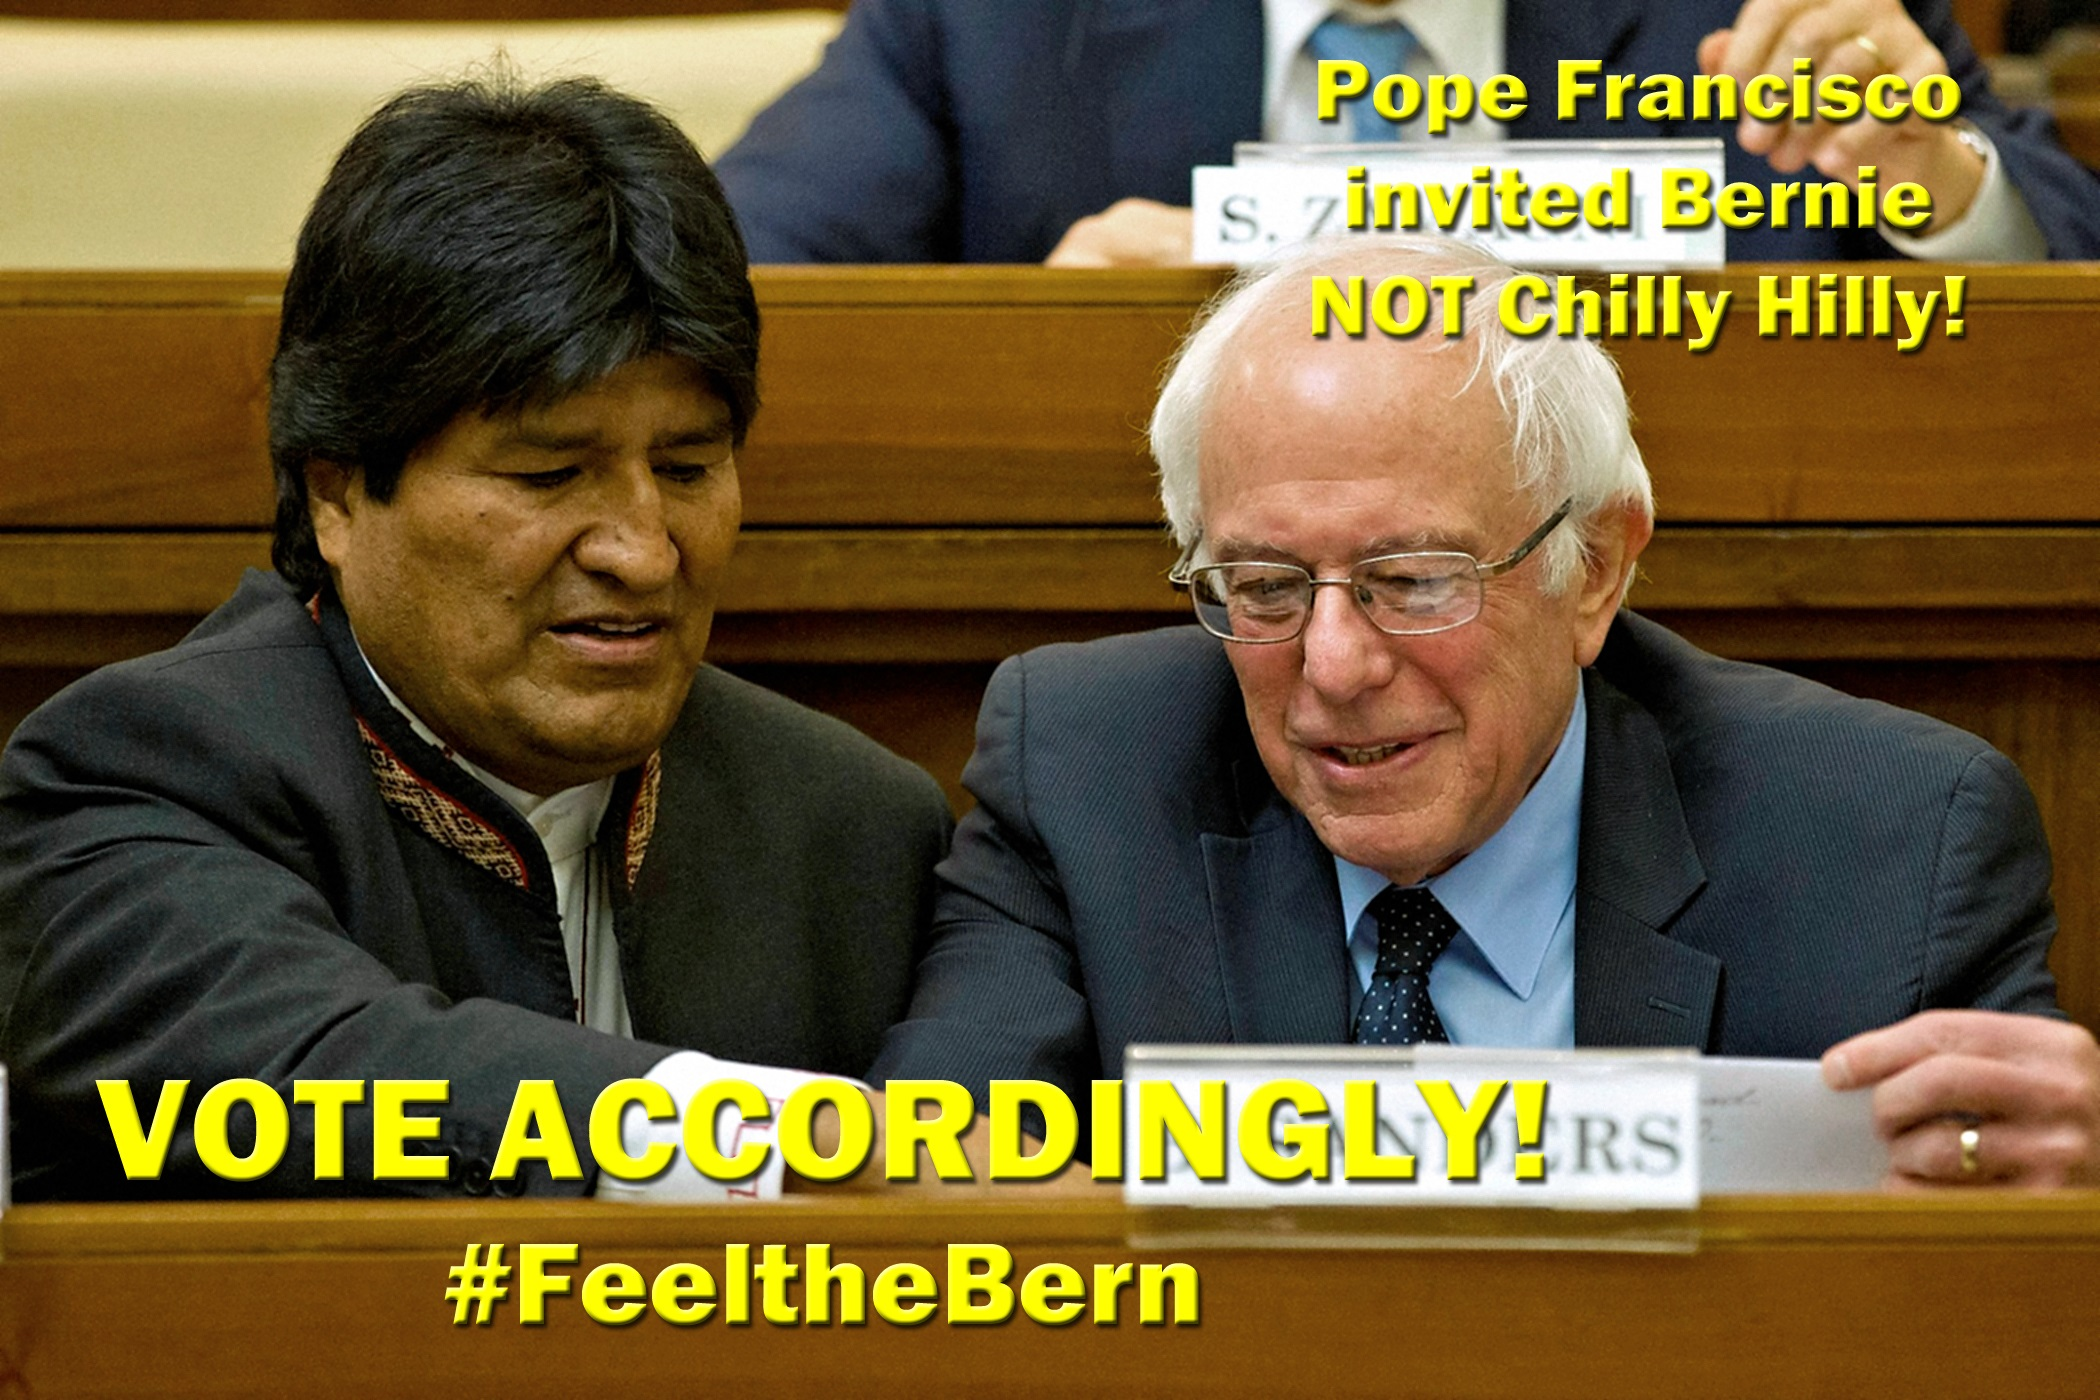 00 pope and bernie and morales 150416